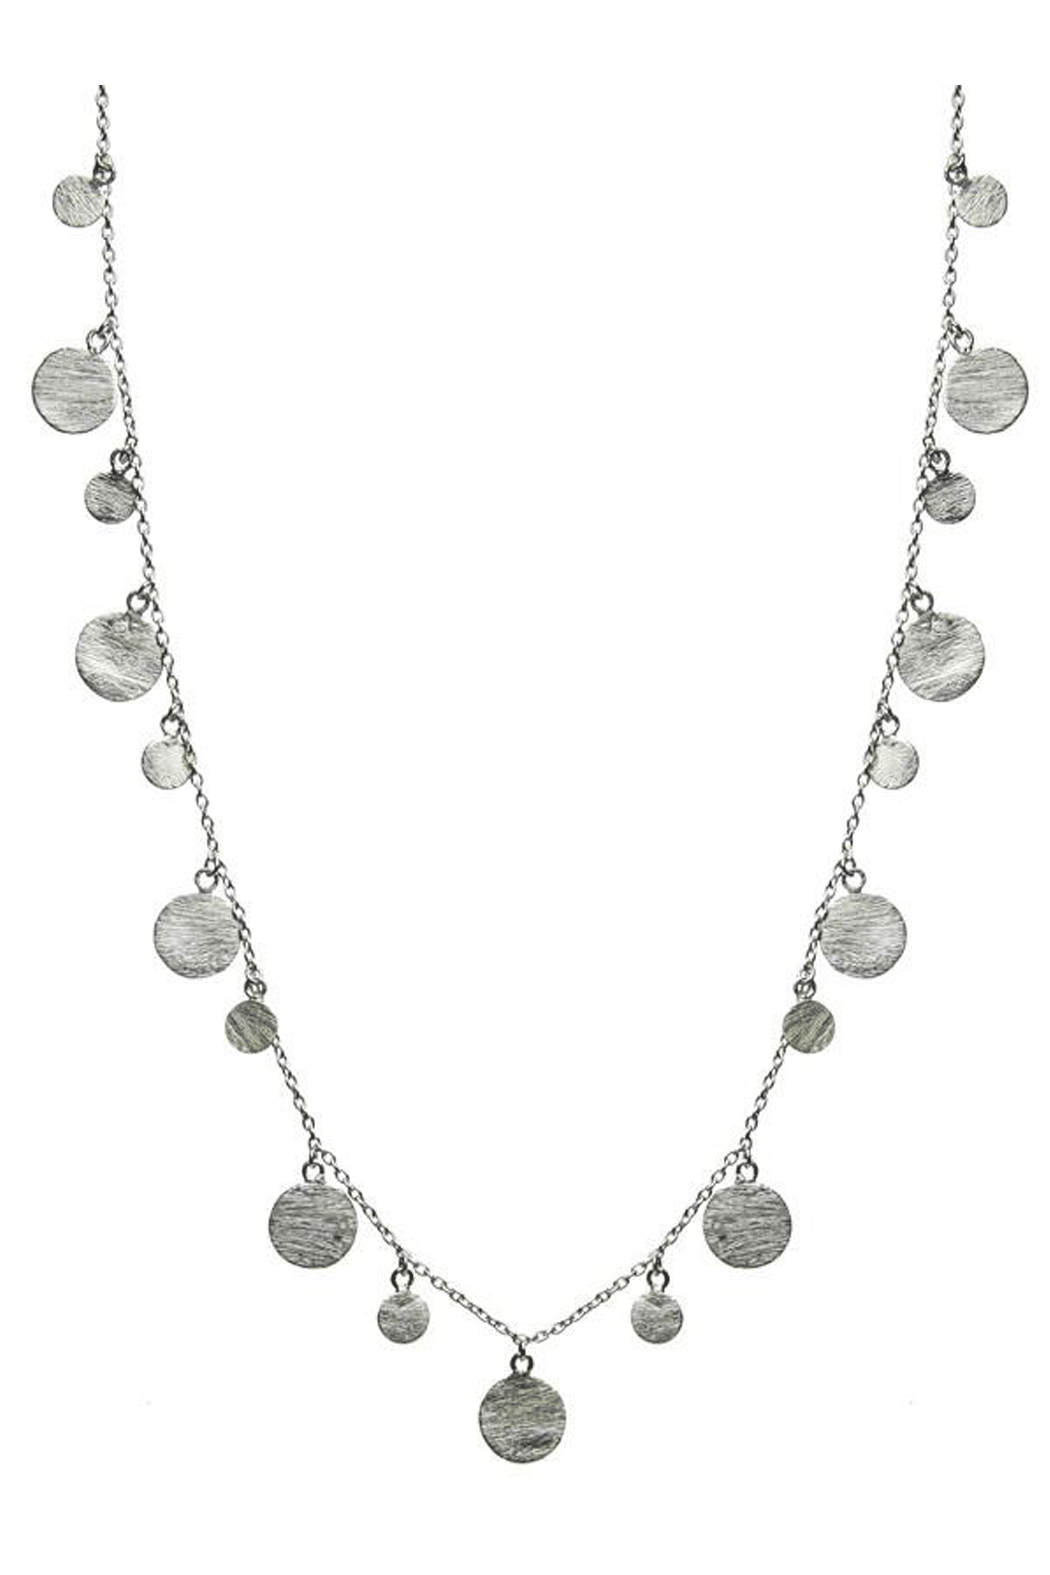 Sikara & Co. Art Deco Necklace with Brushed Discs - Main Image